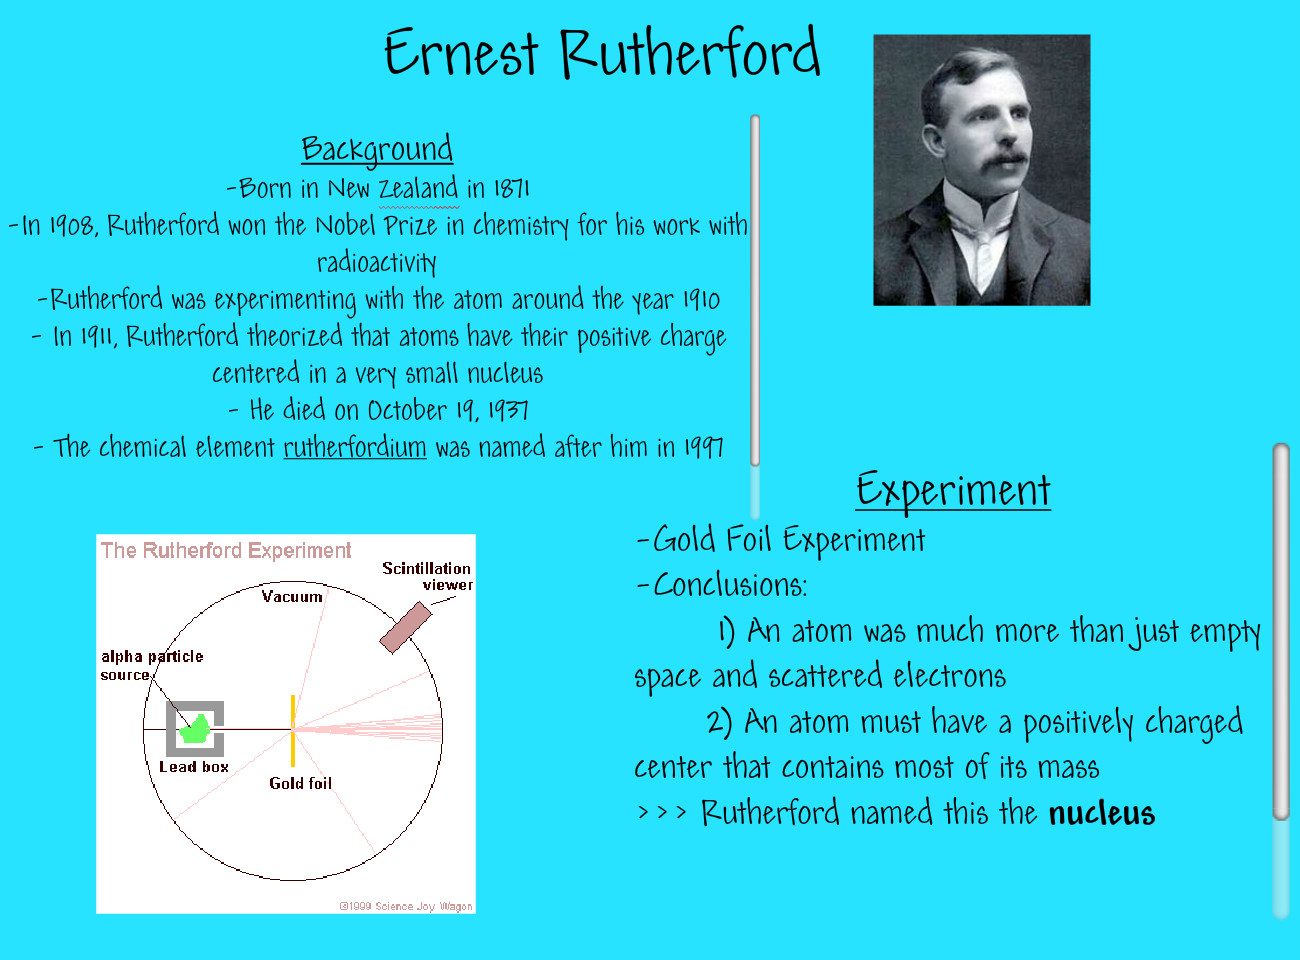 a biography of ernest rutherford Ernest rutherford biography pdf - free download as pdf file (pdf), text file (txt) or read online for free ernest-rutherford-biography-pdf.